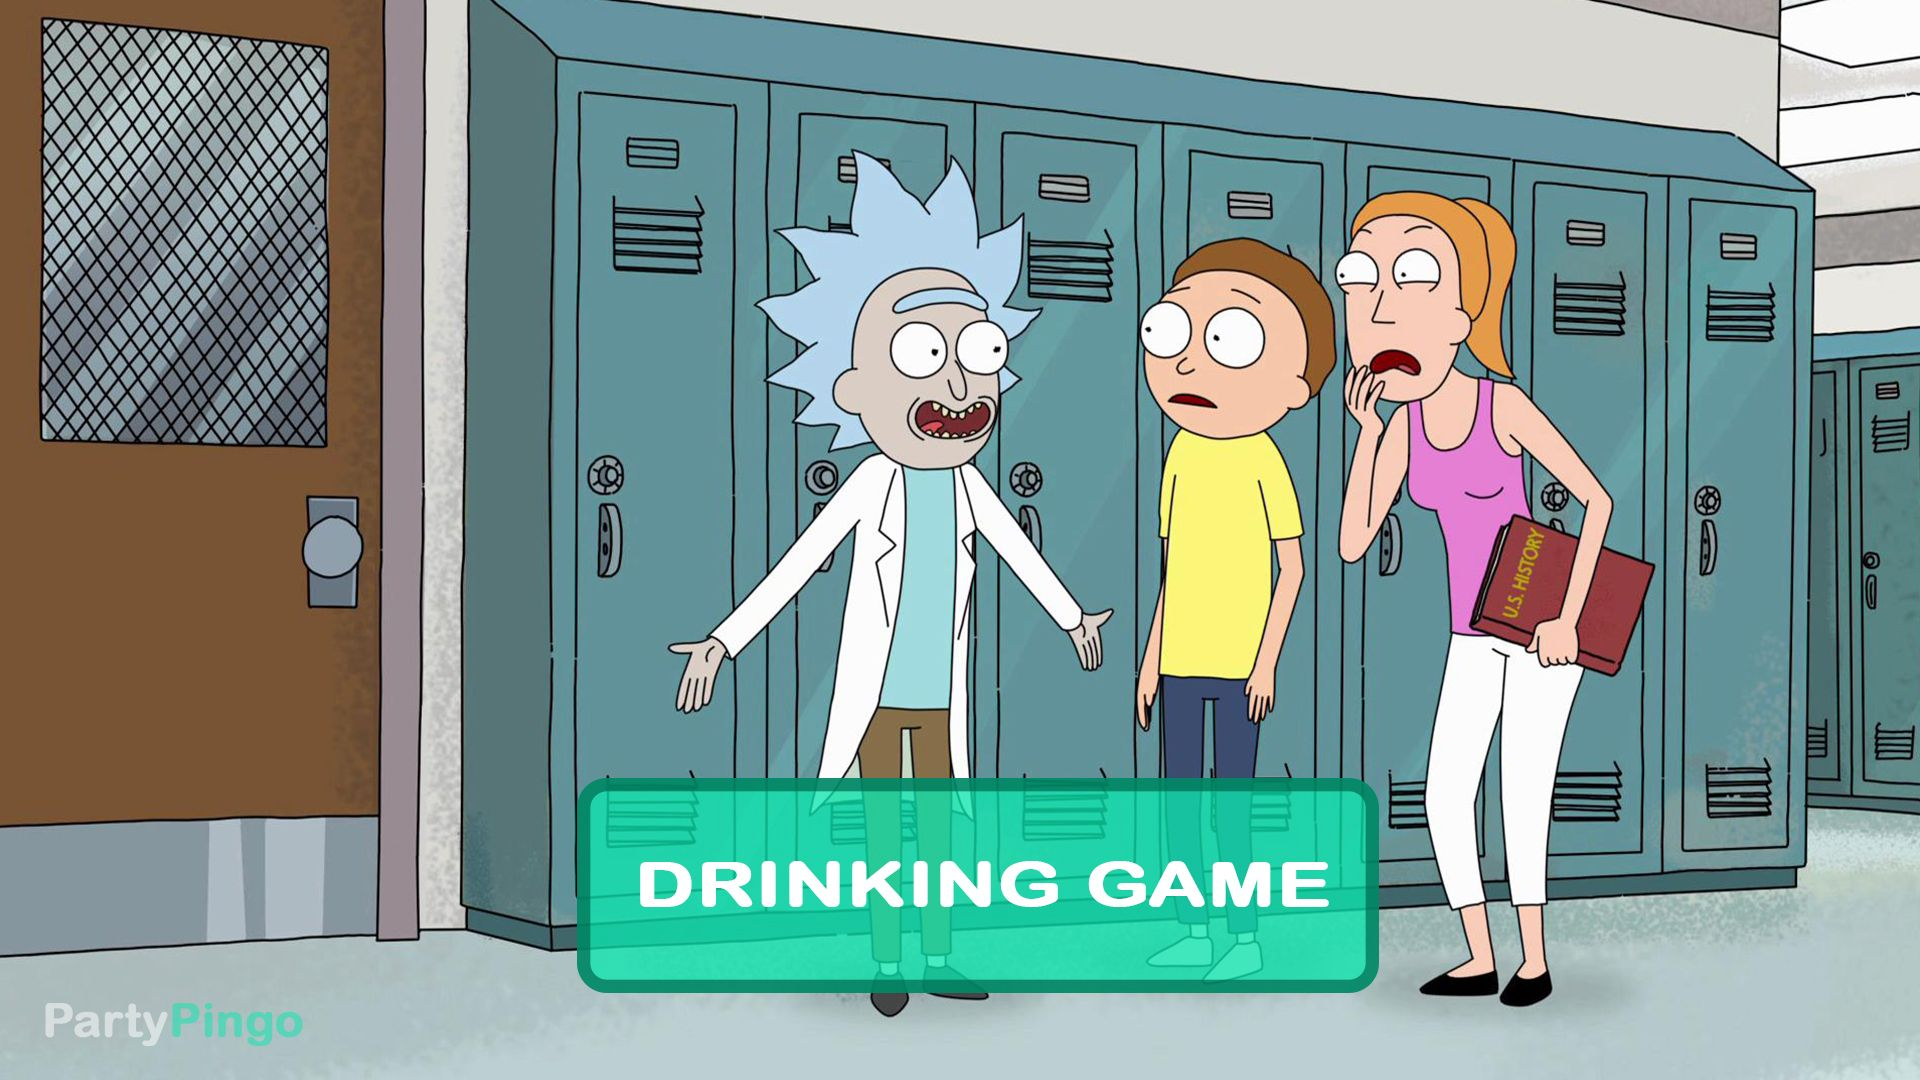 Rick And Morty Big Trouble In Little Sanchez Drinking Game Season 2 Episode 7 Drinking Games Rick And Morty Rick And Morty Season